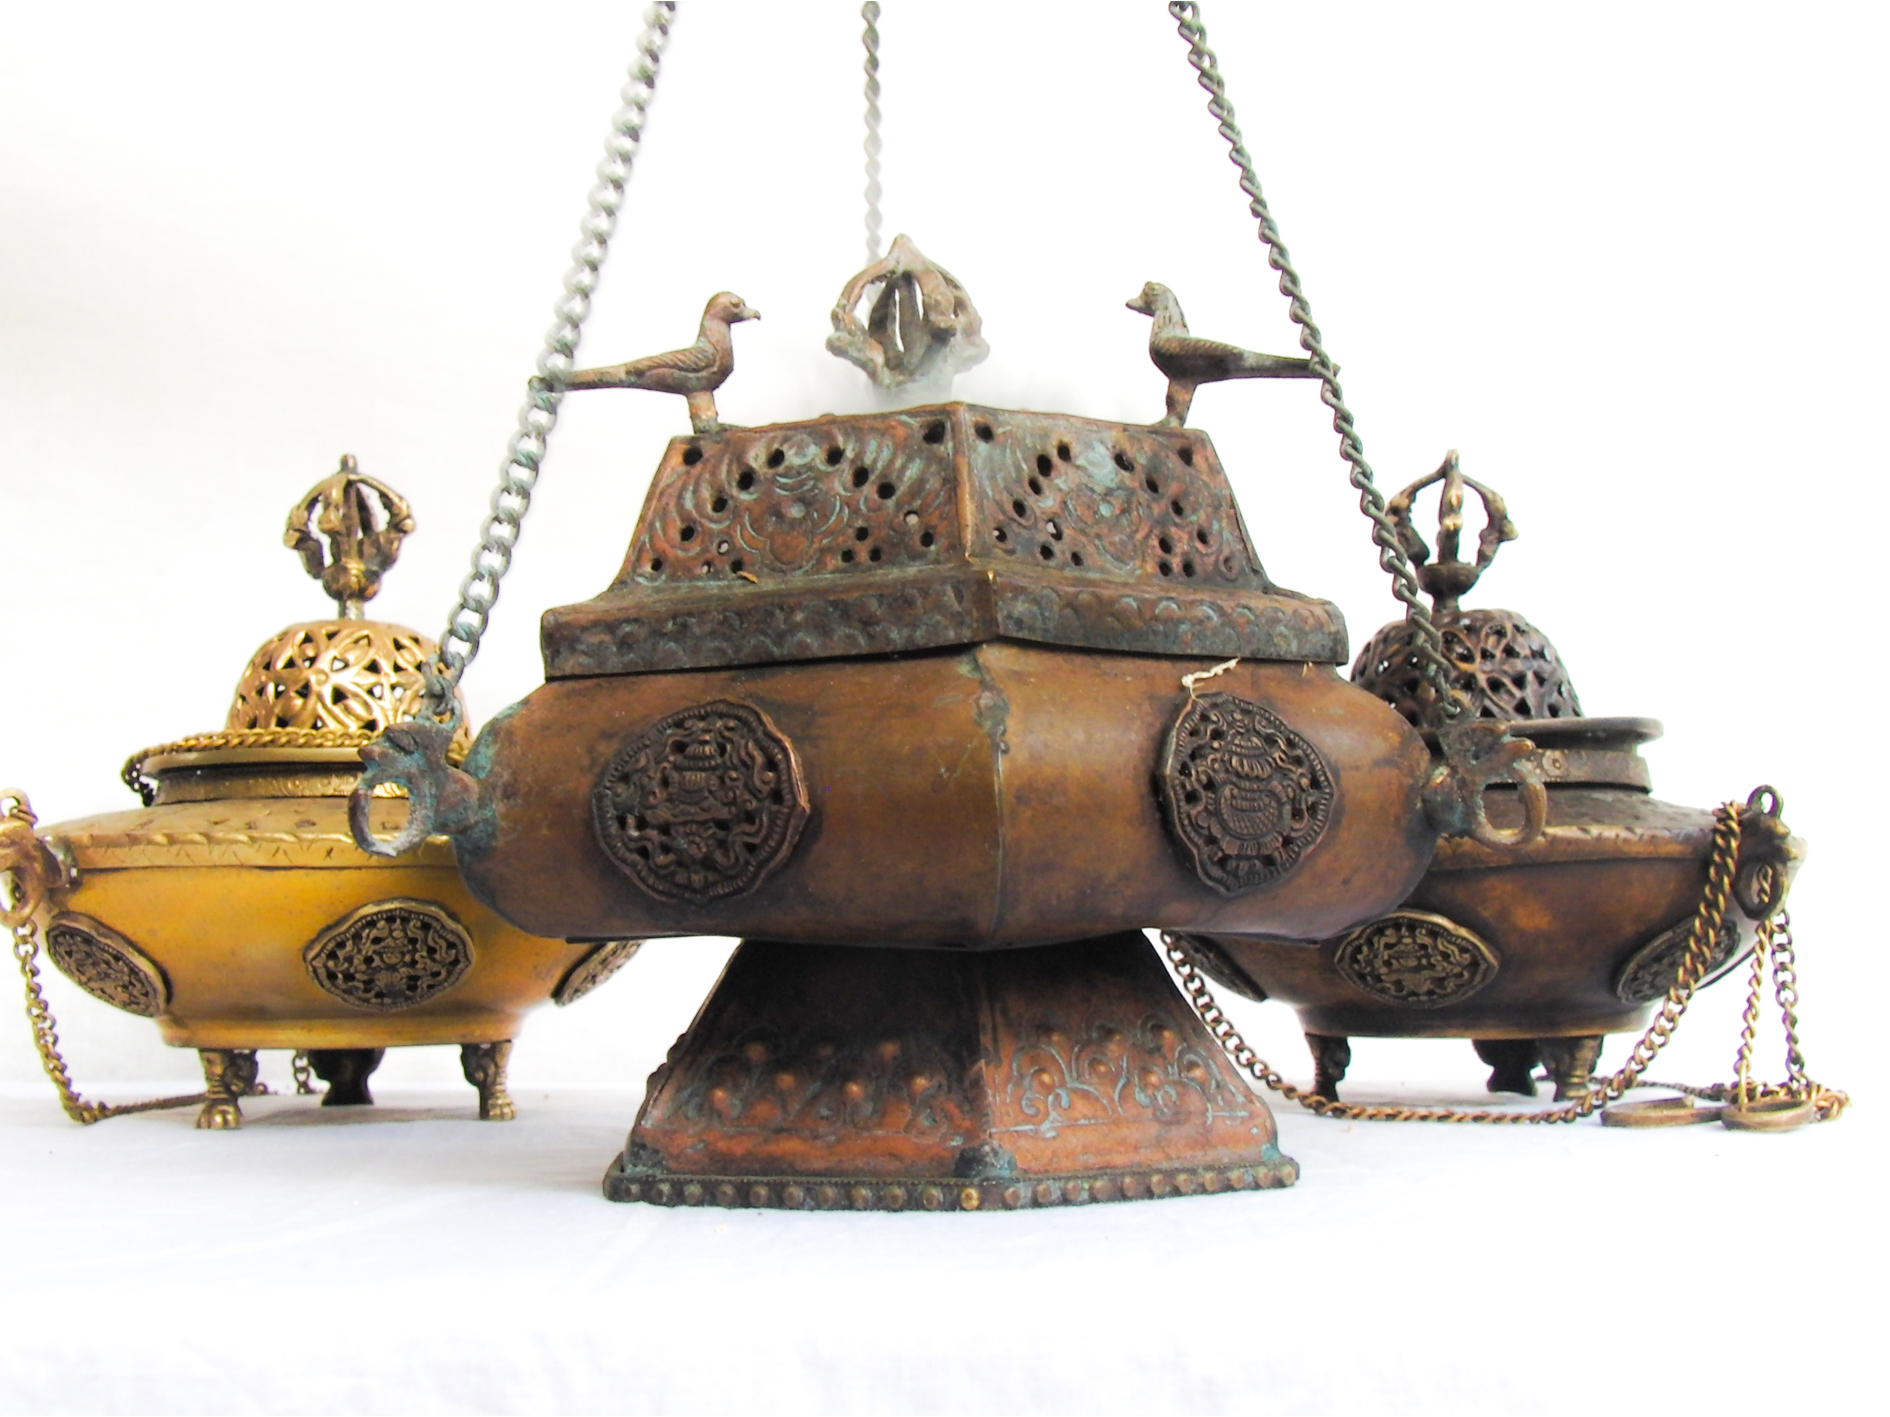 photo for band of incense holders